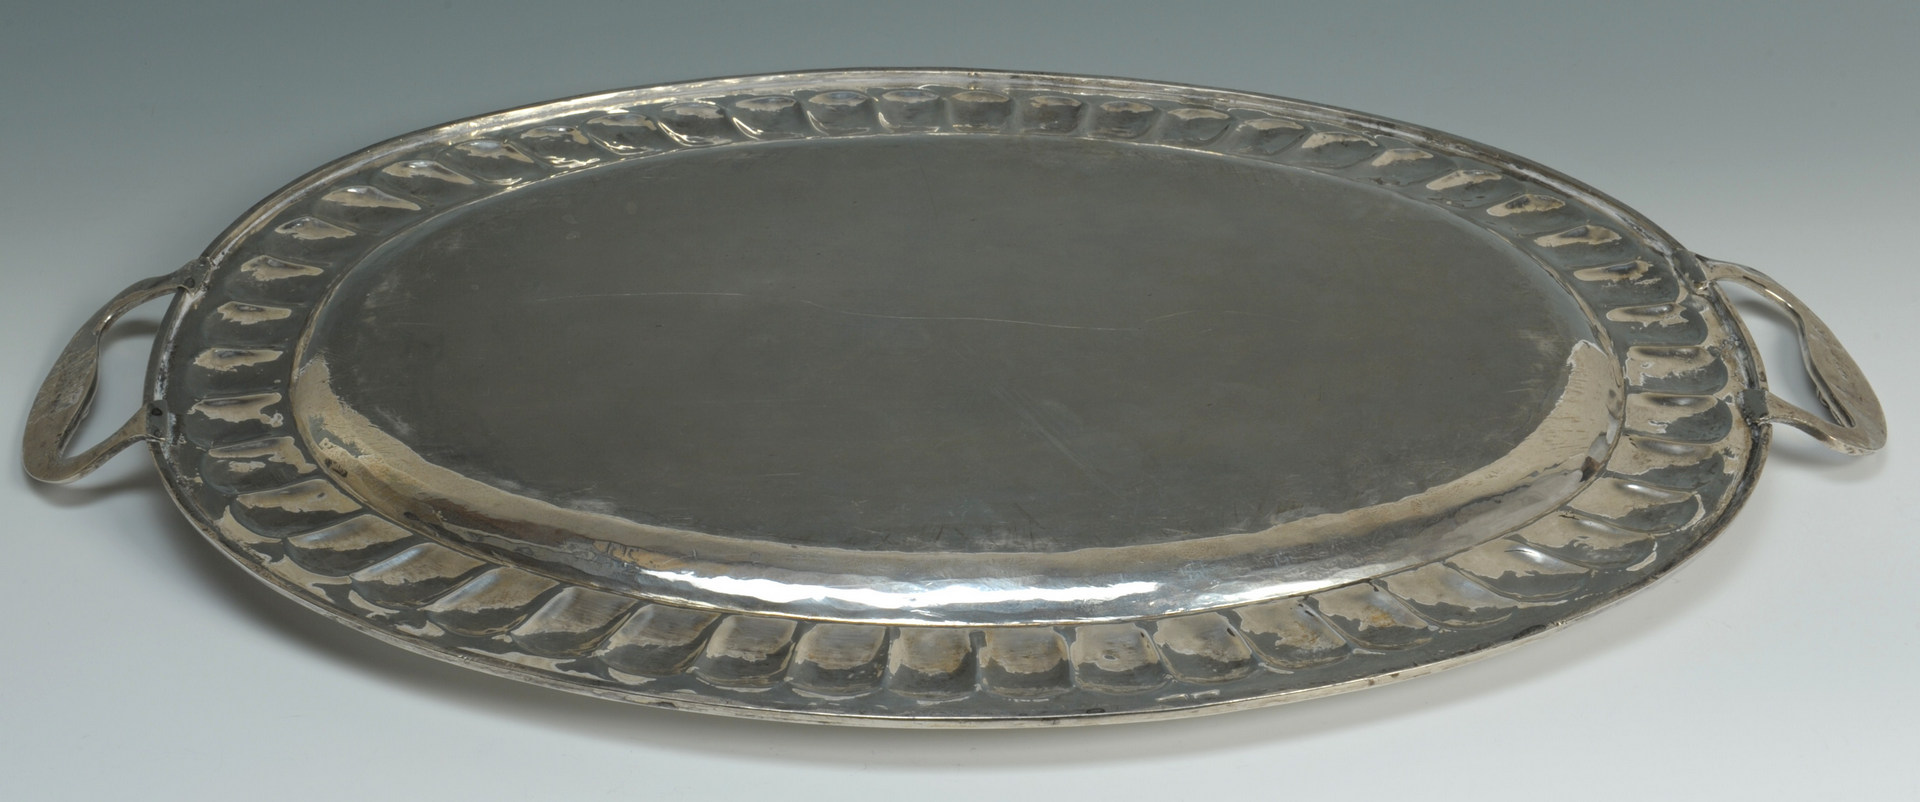 Lot 66: Mexican silver tea service and tray, 15 lbs